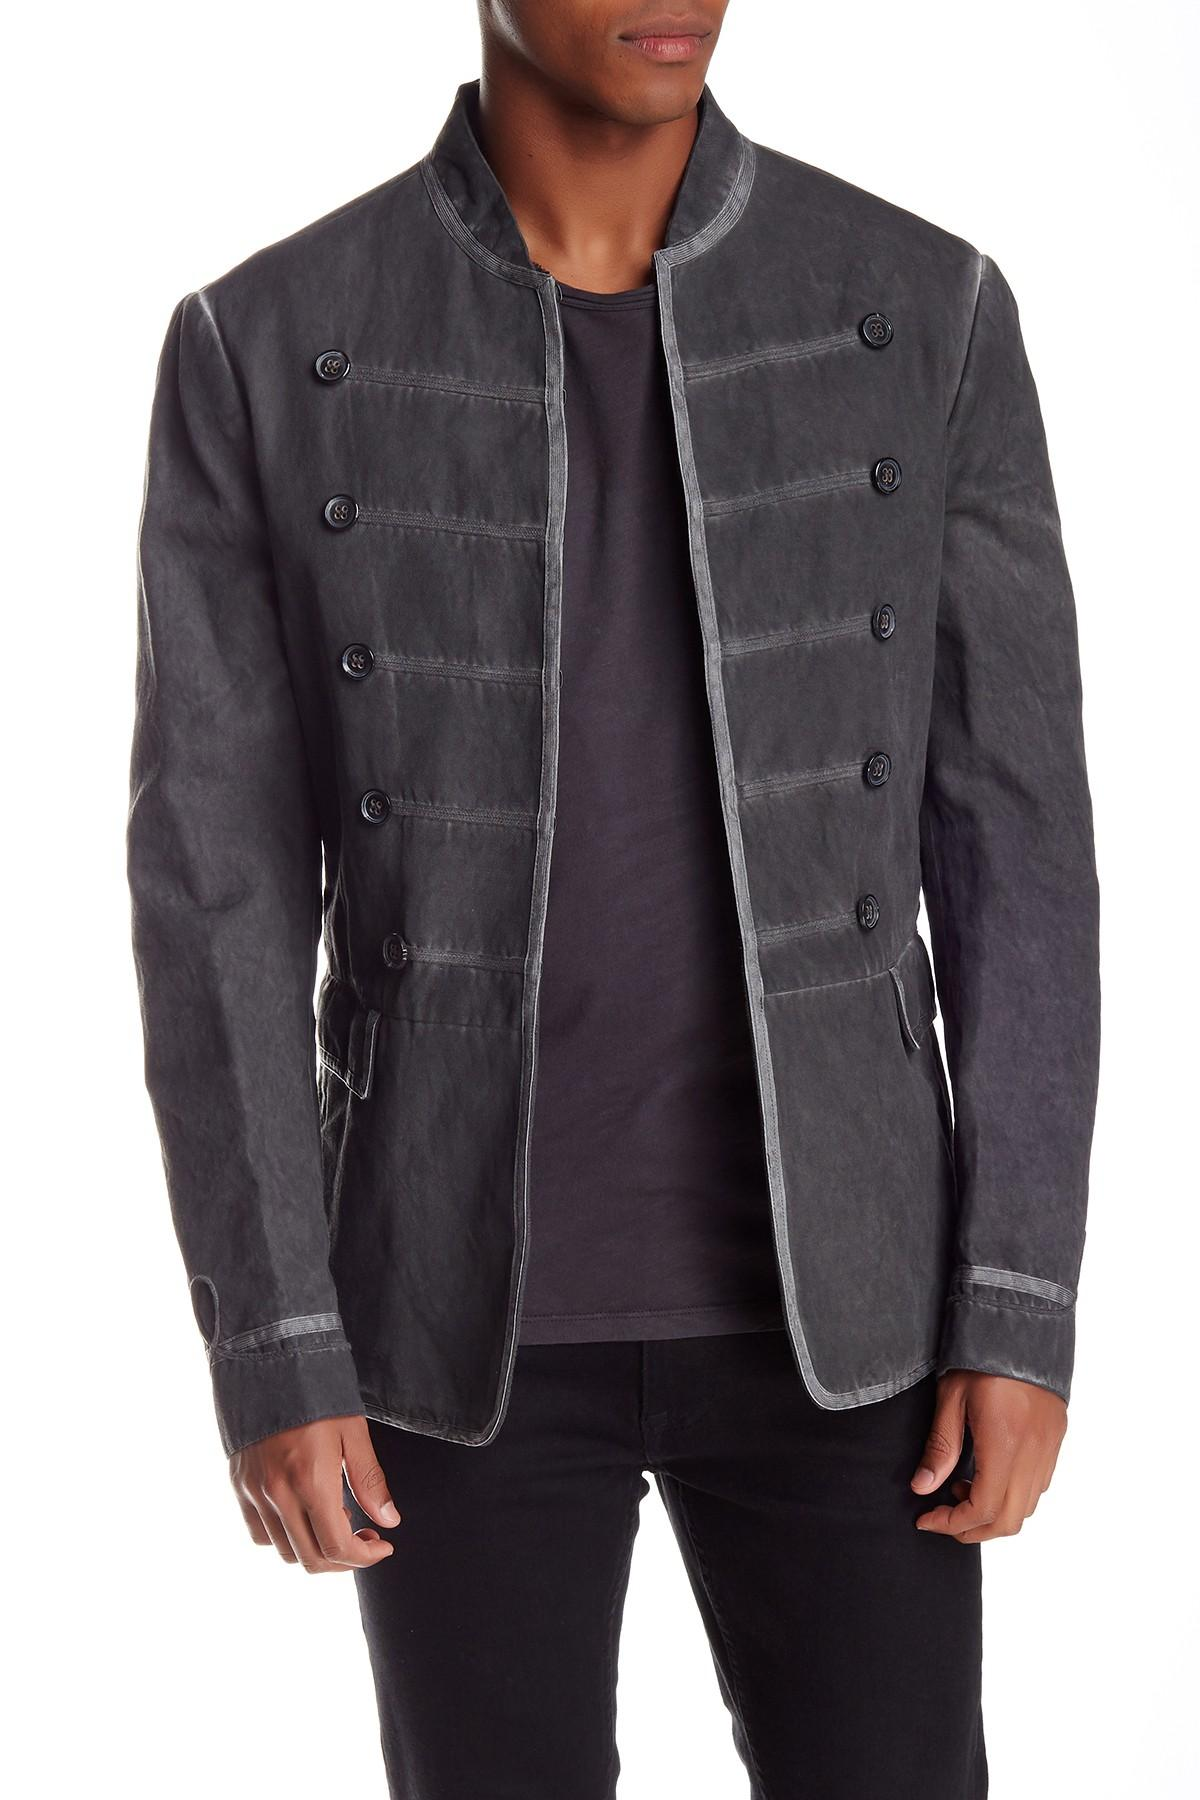 Lyst John Varvatos Artisan Deco Jacket In Black For Men